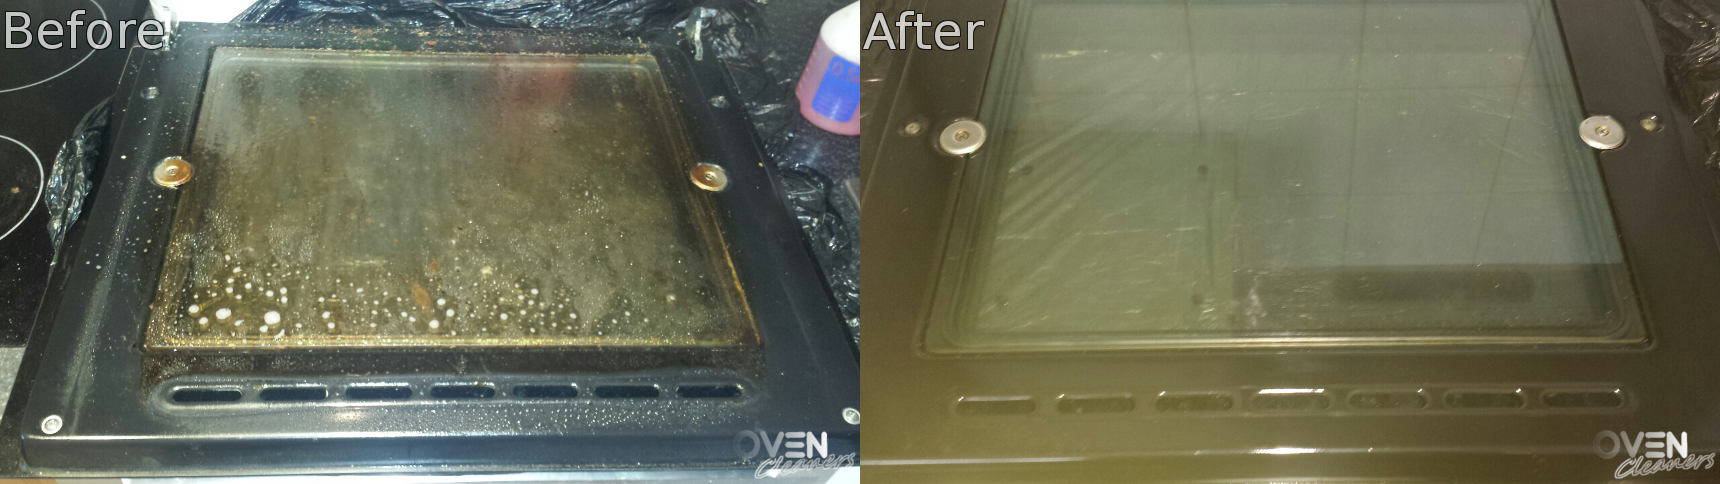 brilliant oven cleaning: before and after